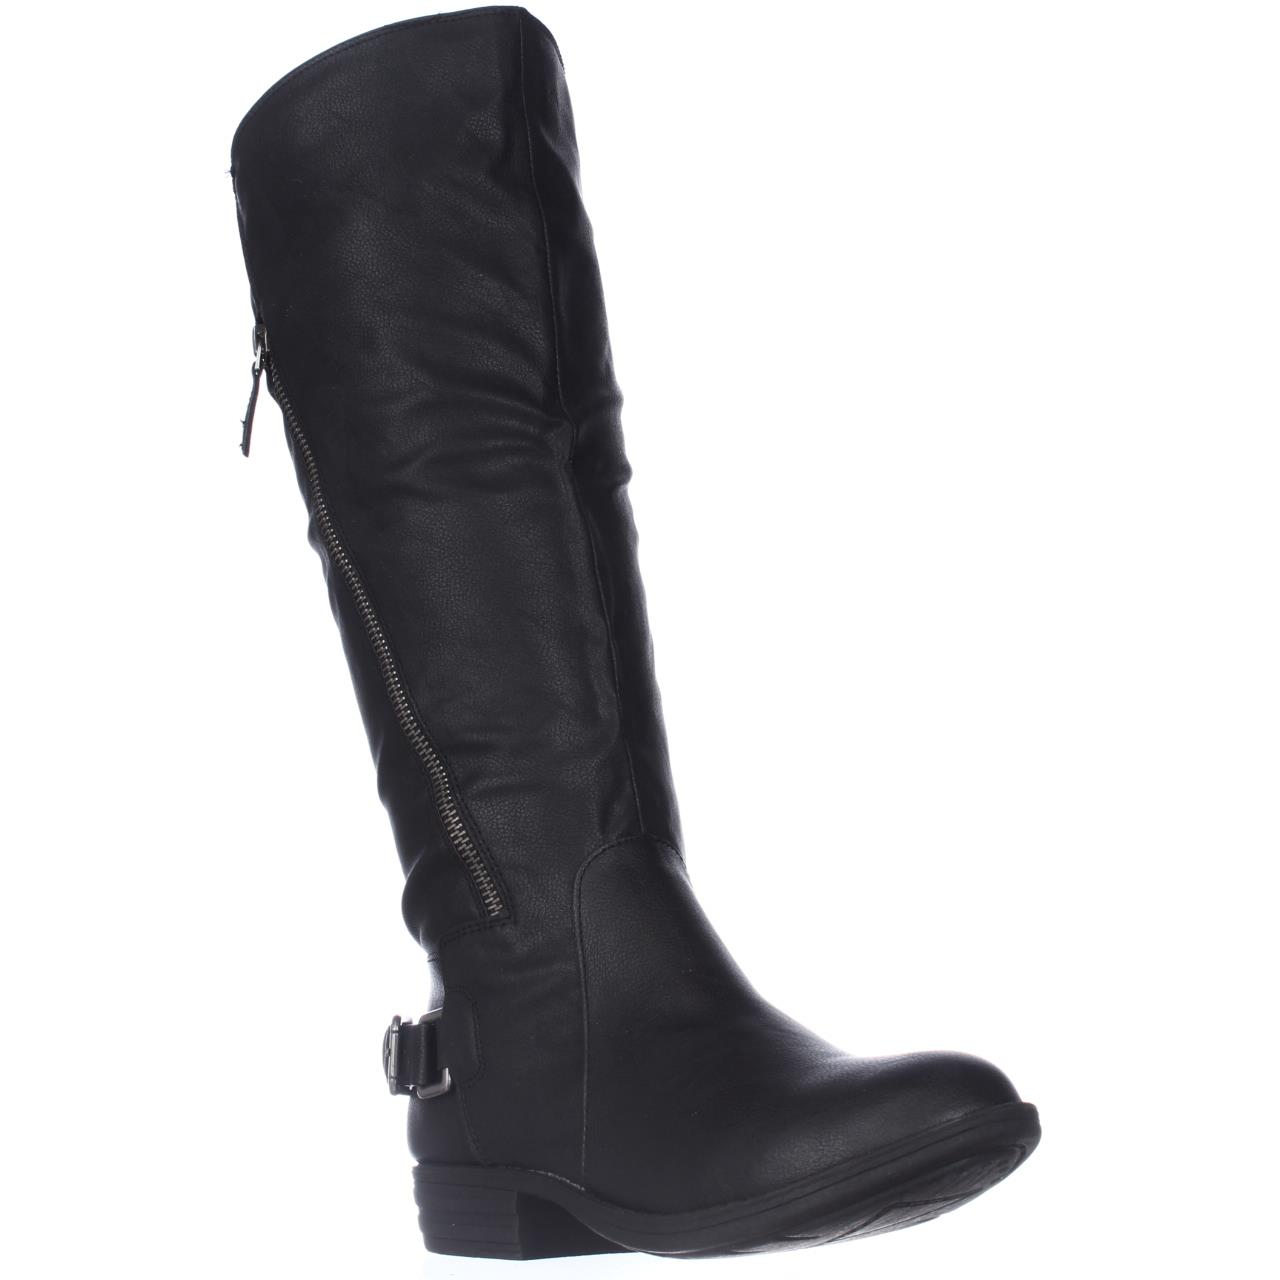 Image of Womens A.R. Asher Wide Calf Riding Boots - Black